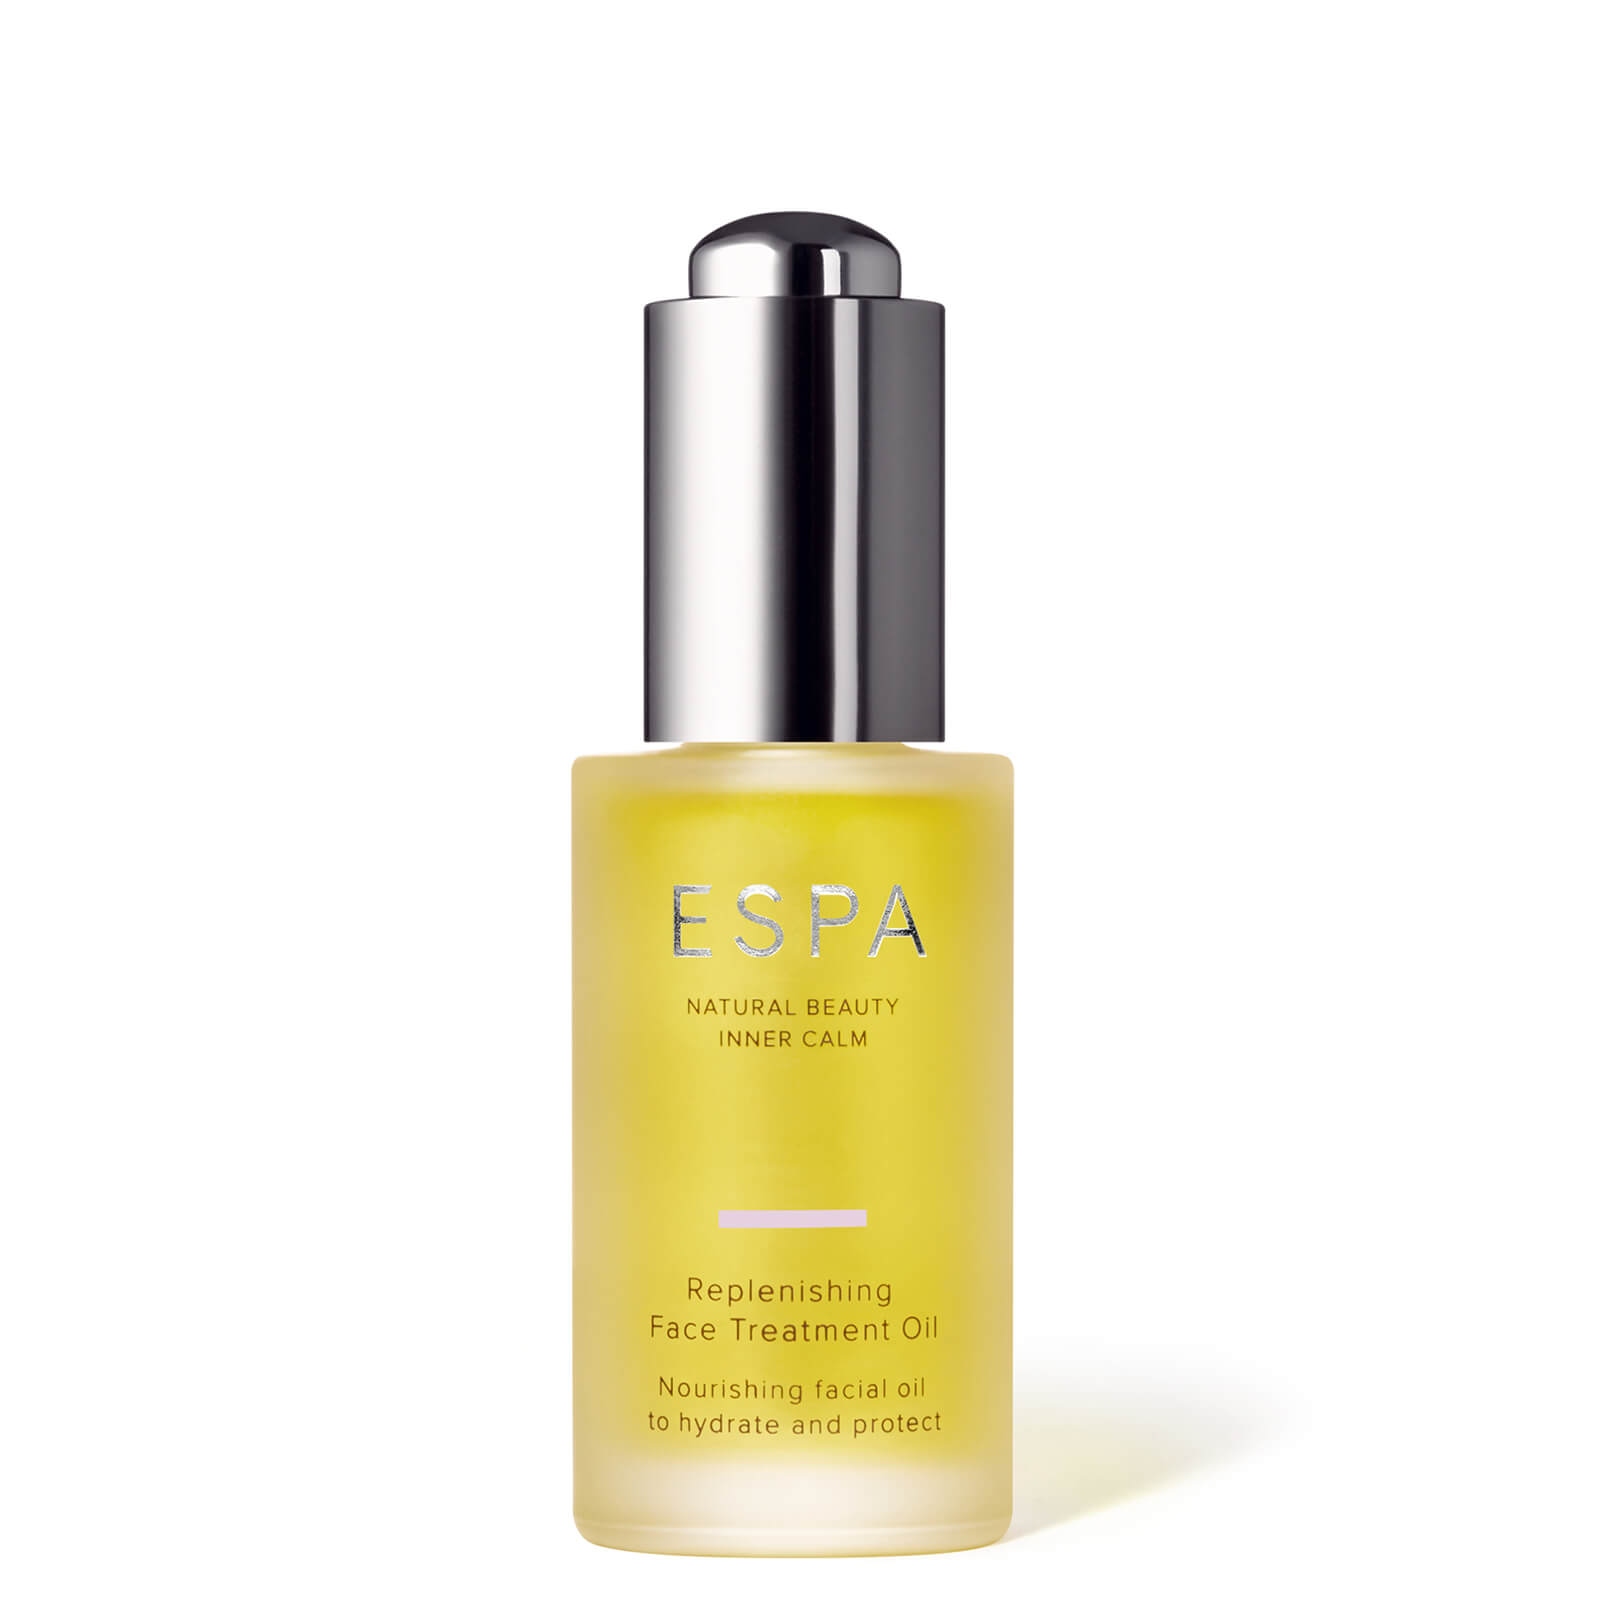 Replenishing Face Treatment Oil